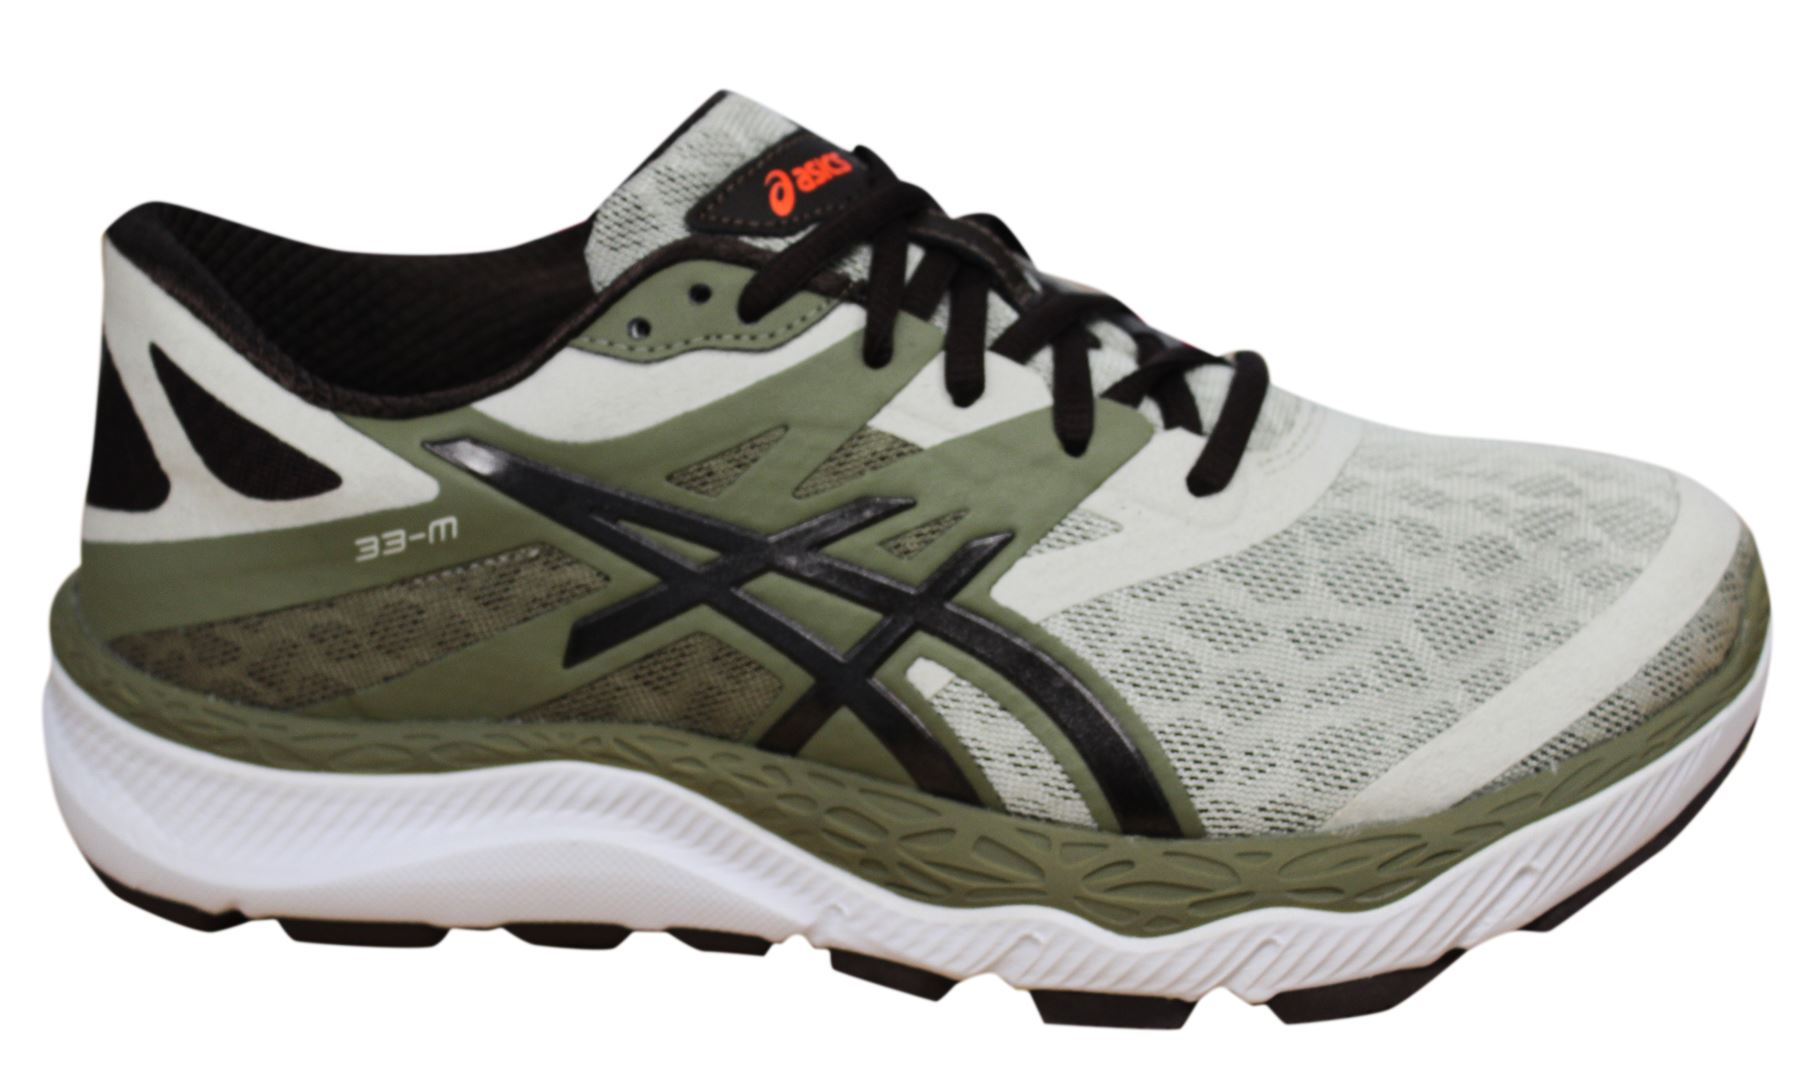 22f26ce15b24c Details about Asics 33-M Khaki Coffee Lace Up Synthetic Leather Mens  Trainers T538N 0784 D44